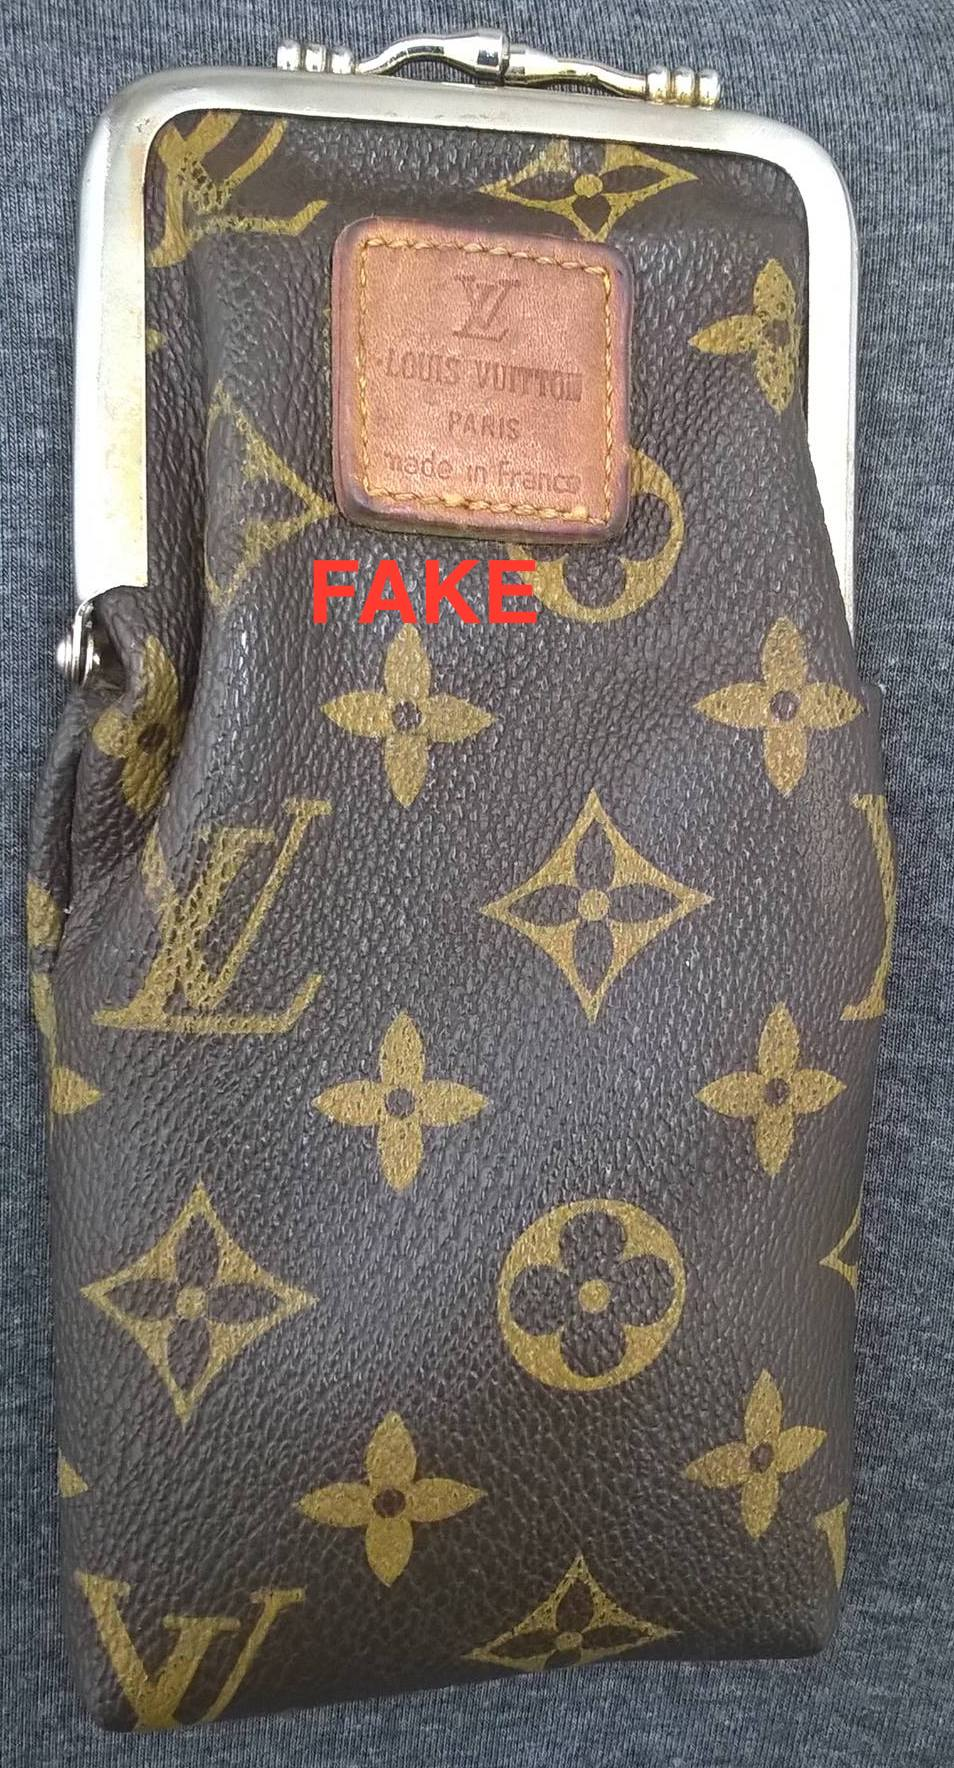 Louis Vuitton Authentication Amp Date Code Guide Closet